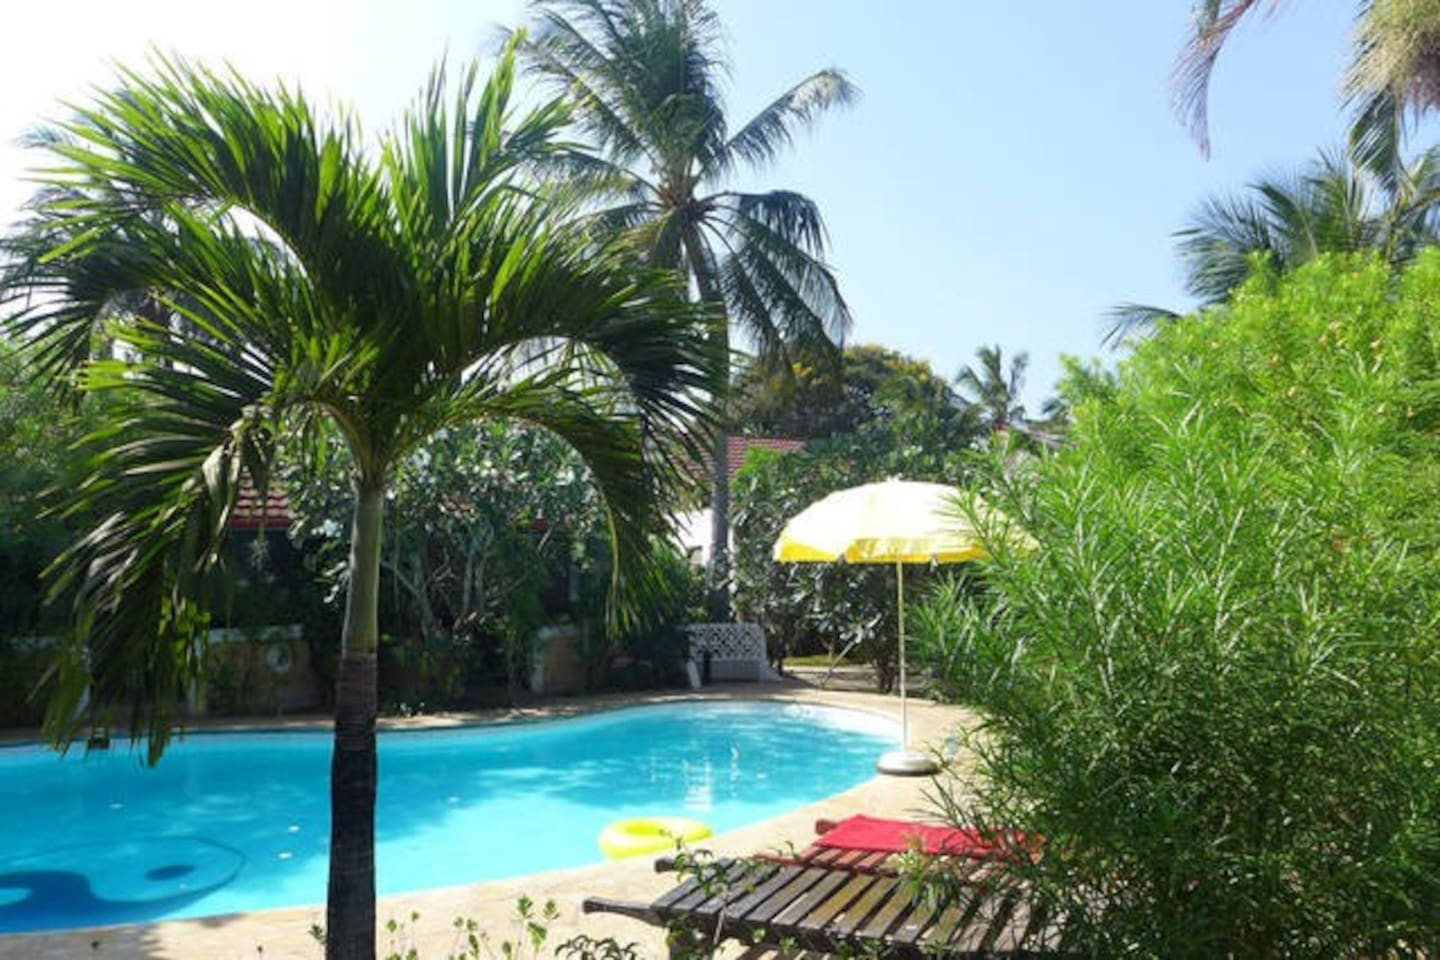 Frangipani Cottages in Diani Beach Kenya - Holiday Homes with pool and garden